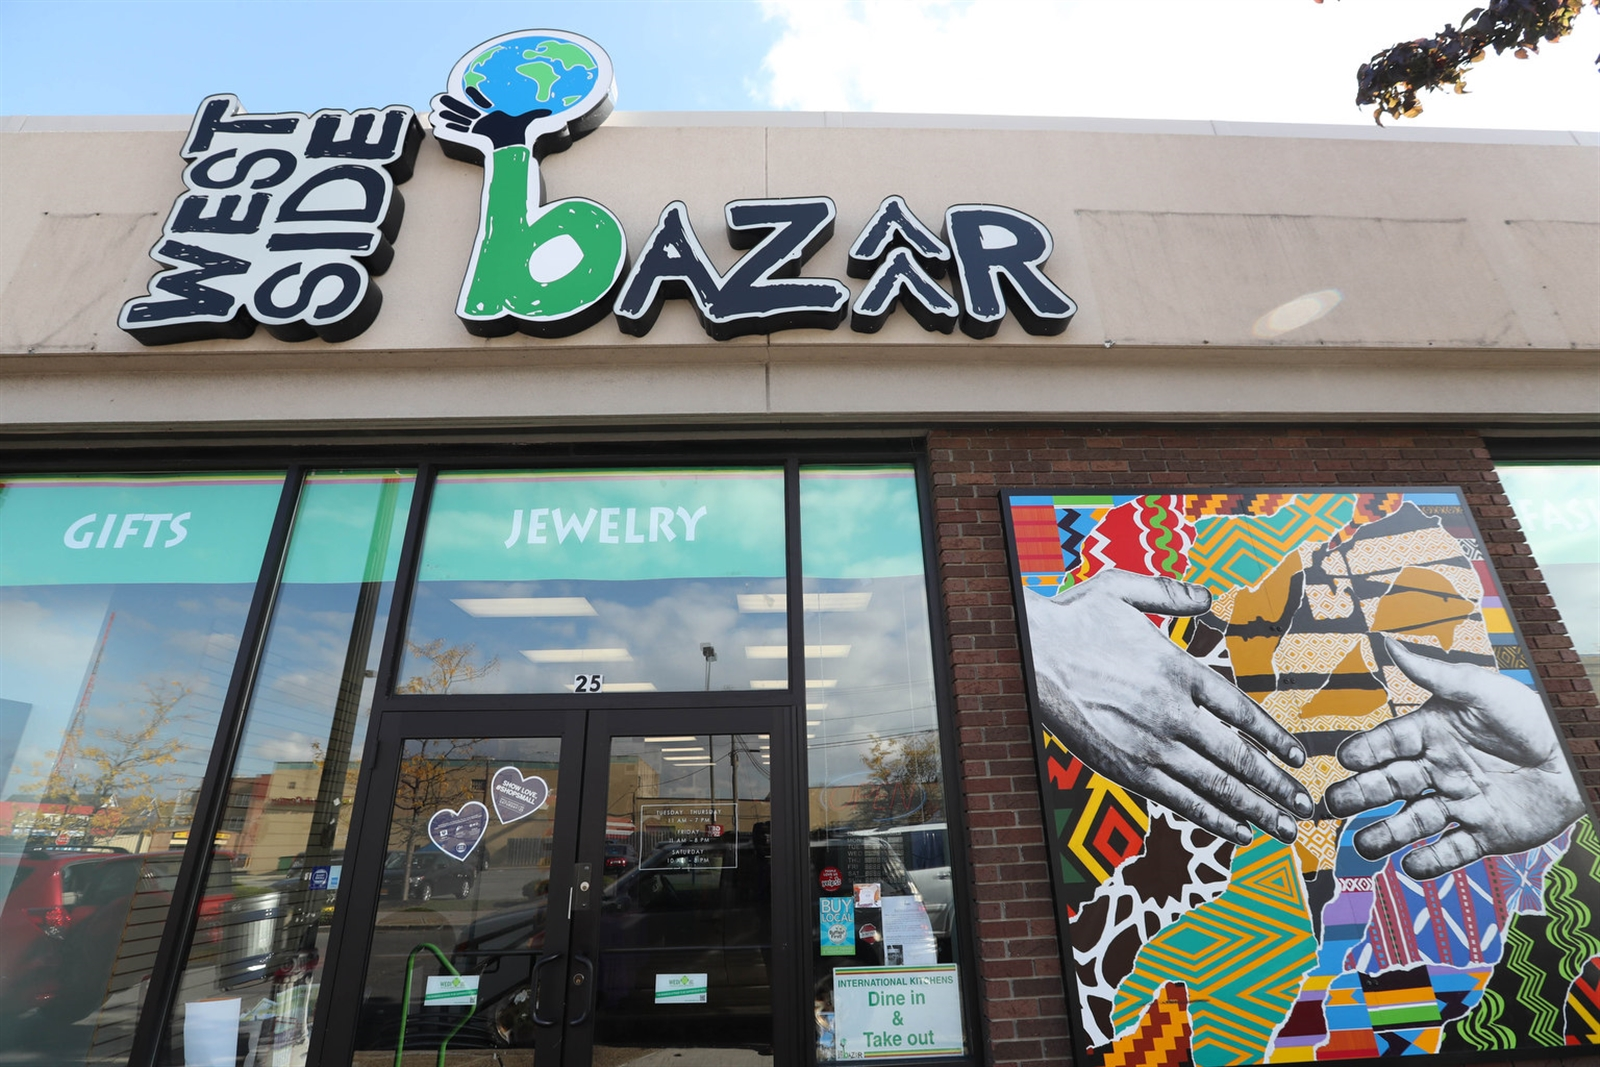 The West Side Bazaar at 25 Grant St. in Buffalo has several small restaurants specializing in authentic ethnic food. The restaurants use a common kitchen and provide a unique opportunity to experience food diversity in one locale.